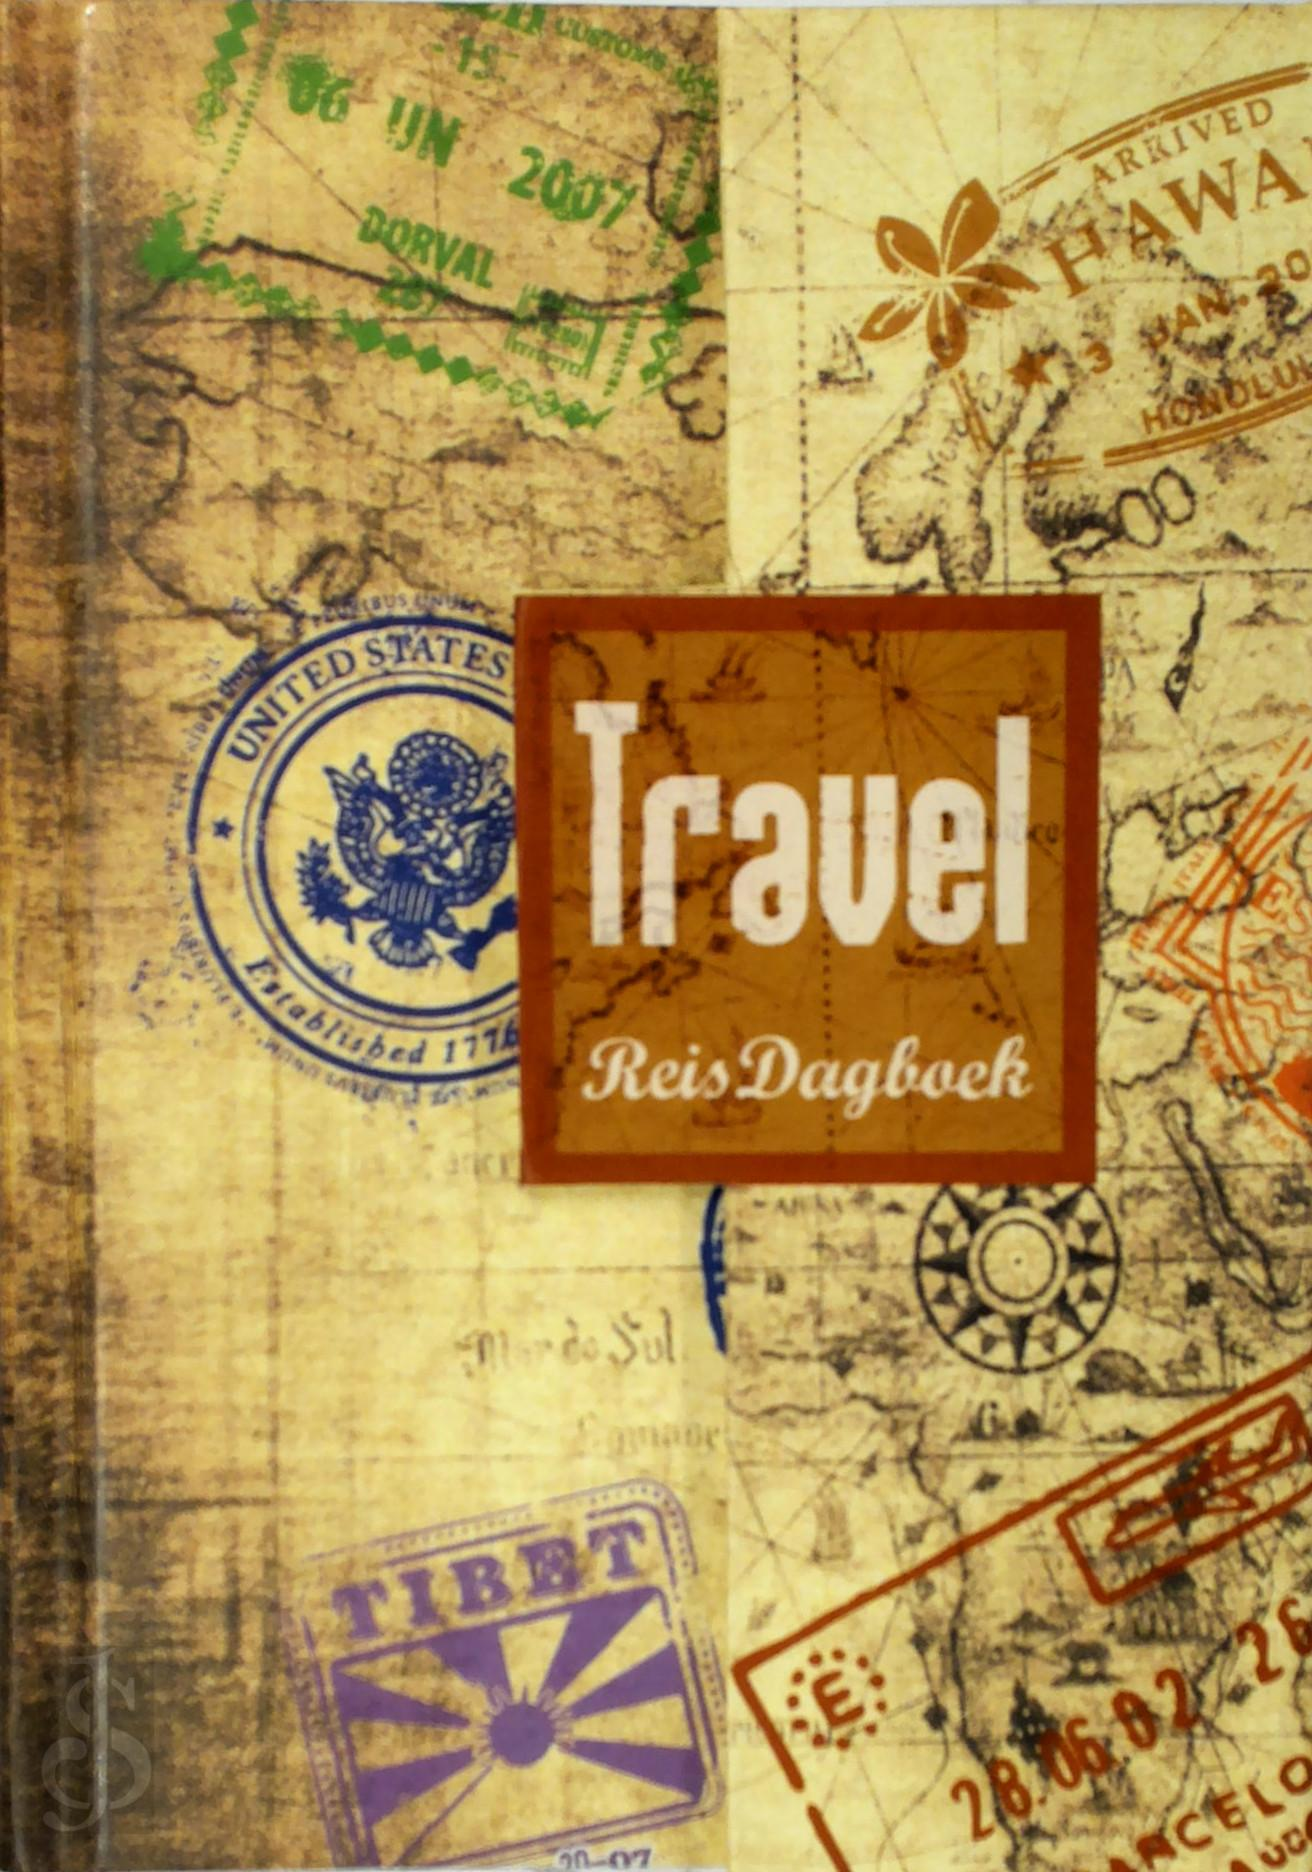 - Travel reisdagboek